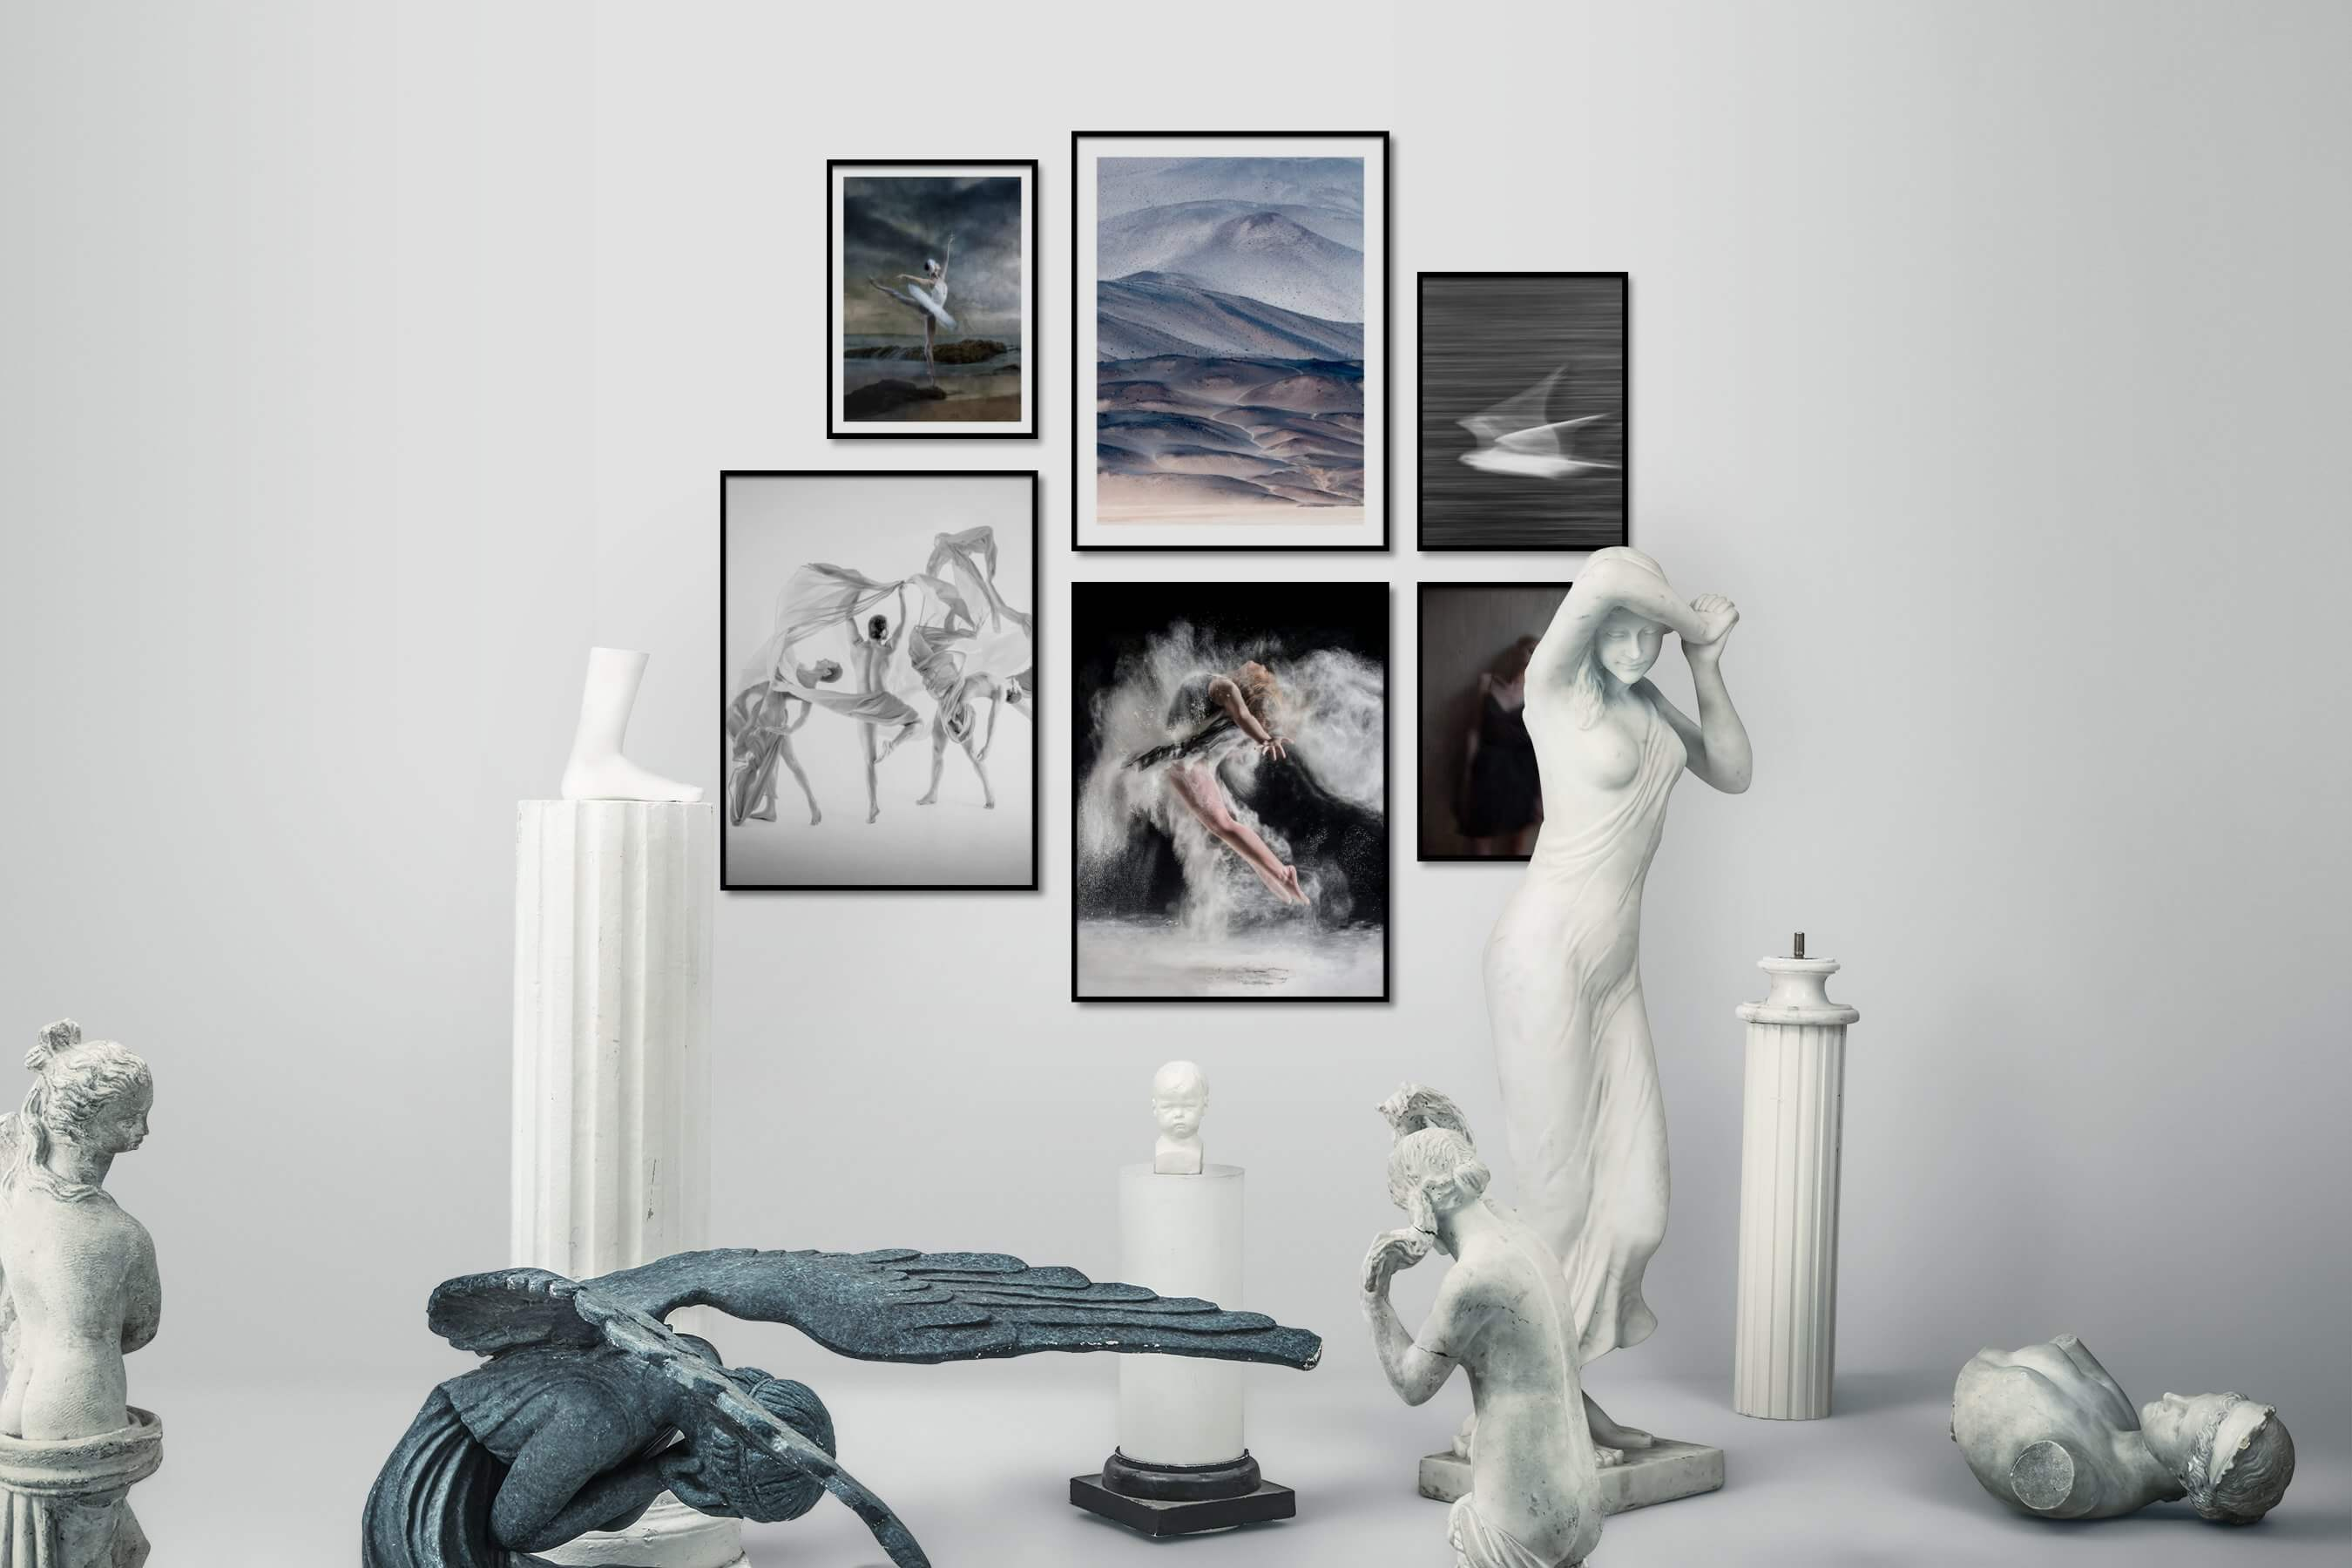 Gallery wall idea with six framed pictures arranged on a wall depicting Fashion & Beauty, Nature, Black & White, Dark Tones, For the Minimalist, and Animals